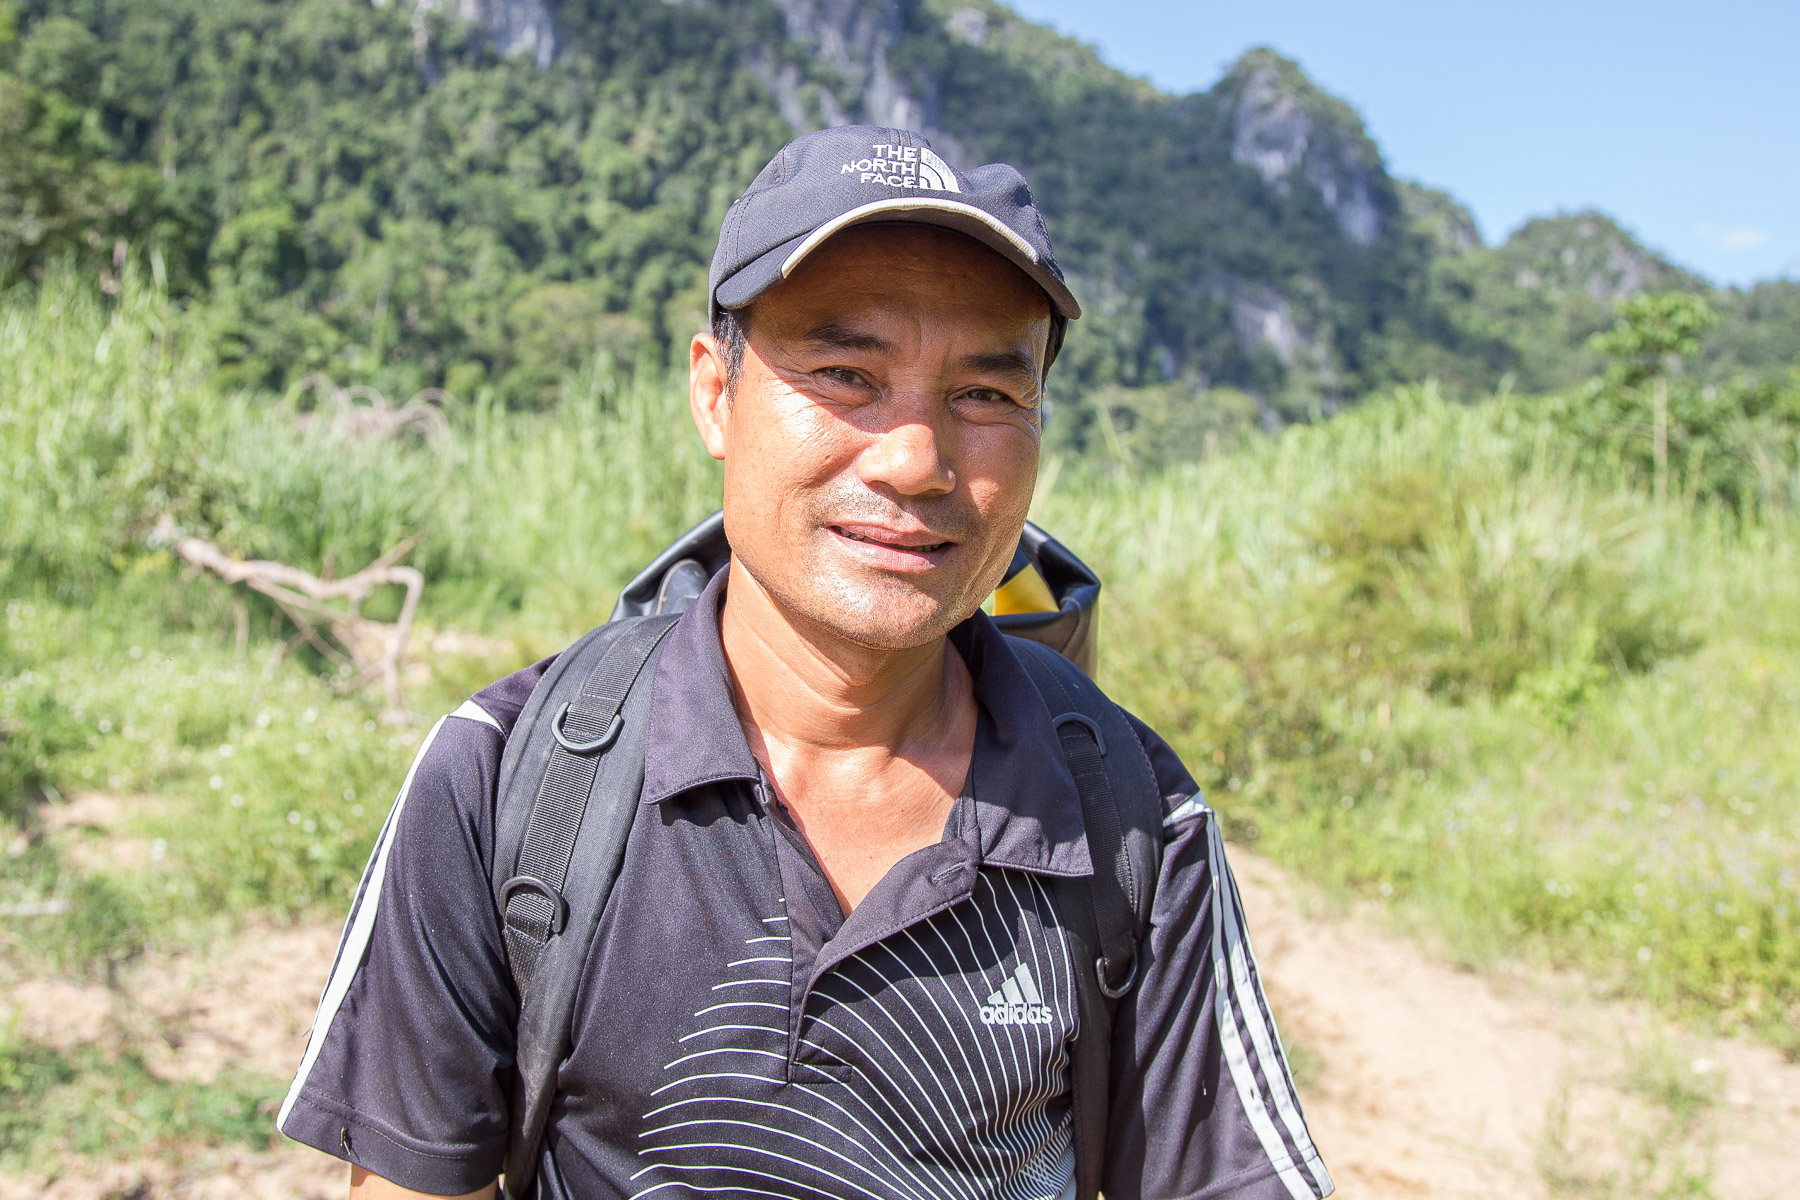 We bumped into this man - Ho Khanh - on the way to Hang En cave. Khanh was instrumental in discovering the world's largest cave, Hang Son Doong and now works as a cave guide and homestay operator in Phong Nha.